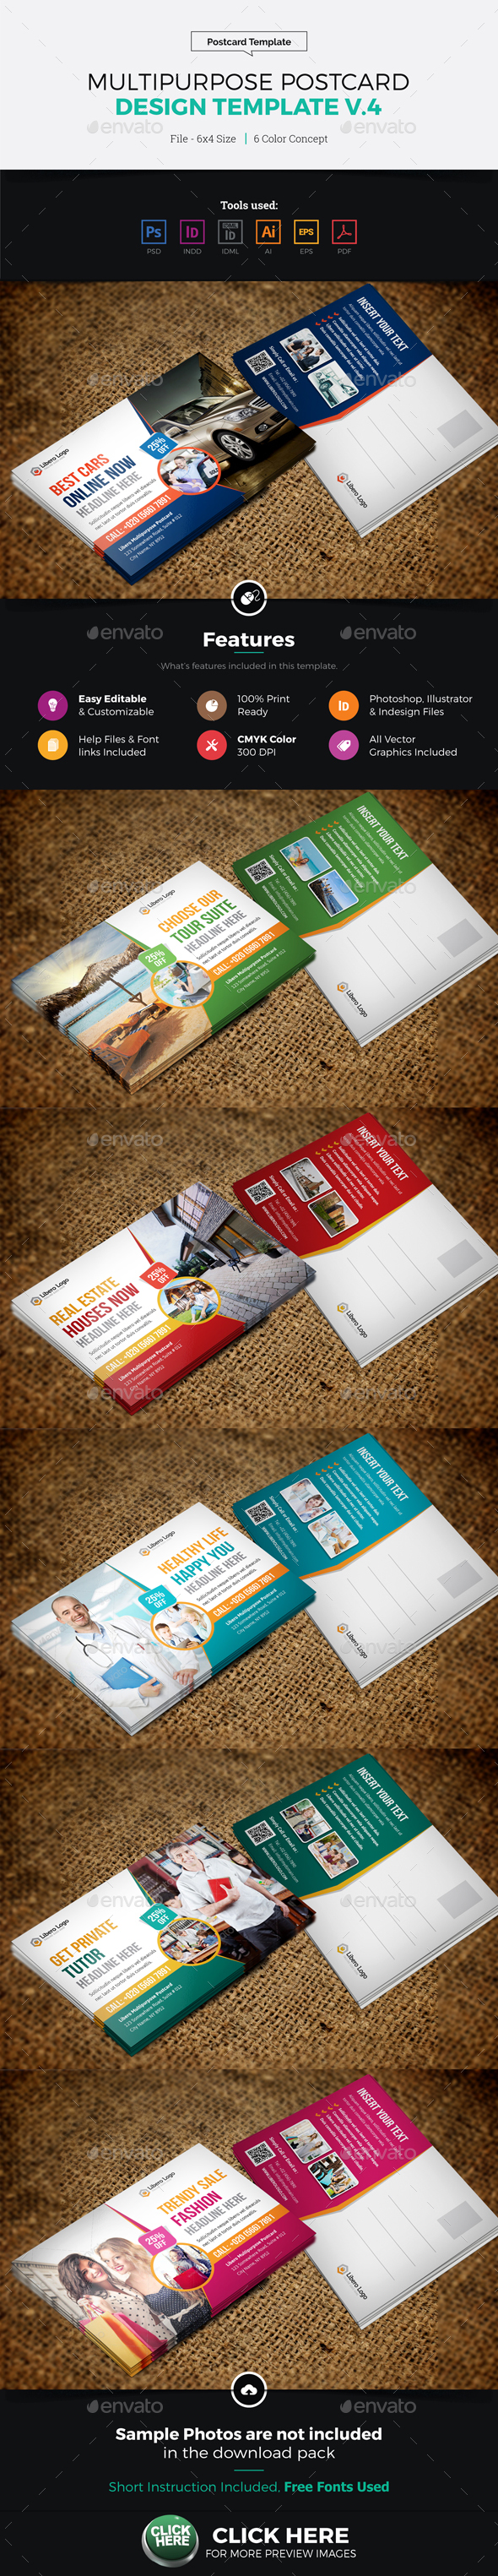 Postcard Design Template v4 - Cards & Invites Print Templates